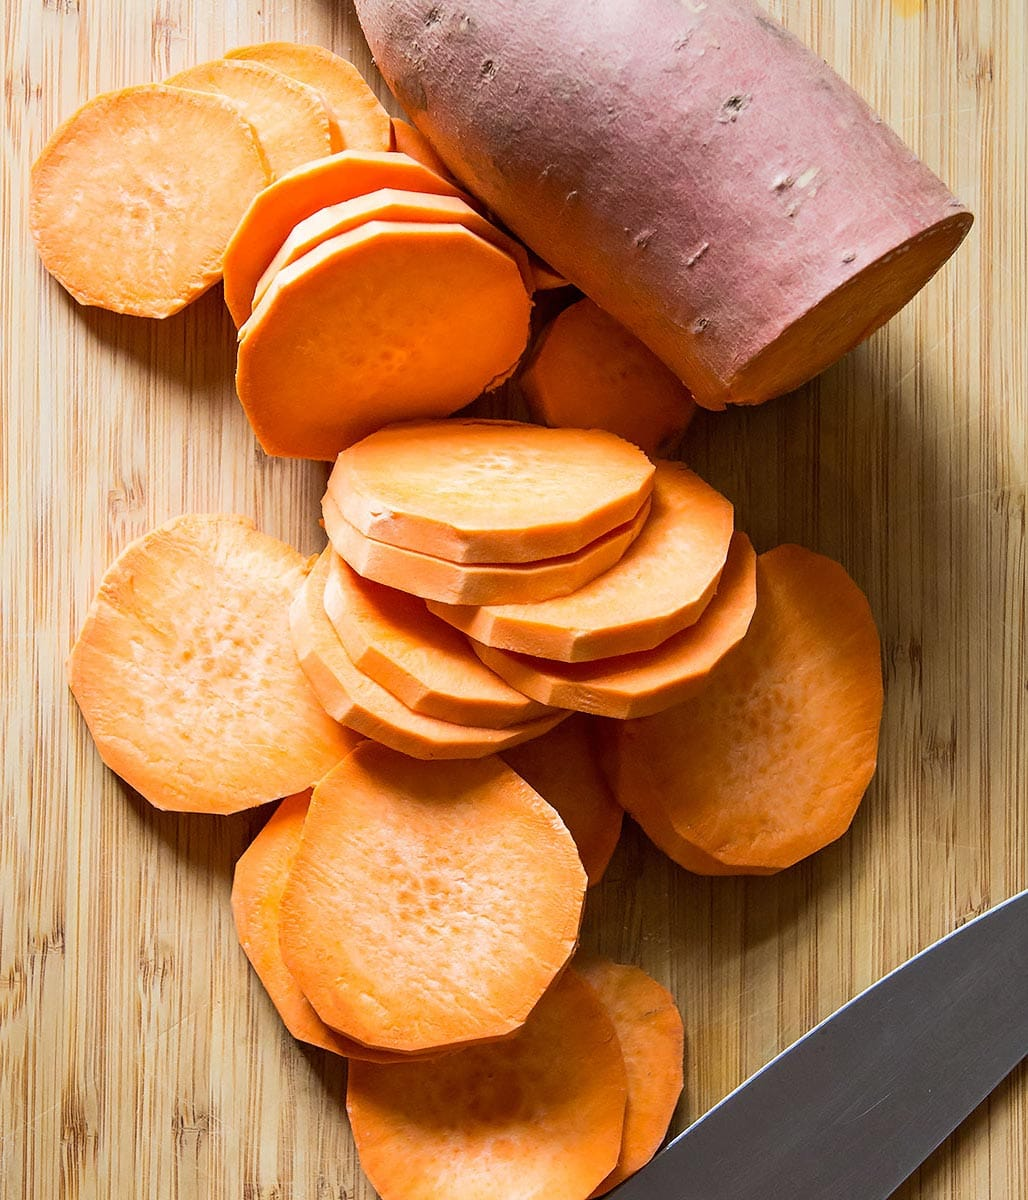 Sliced sweet potato rounds on cutting board